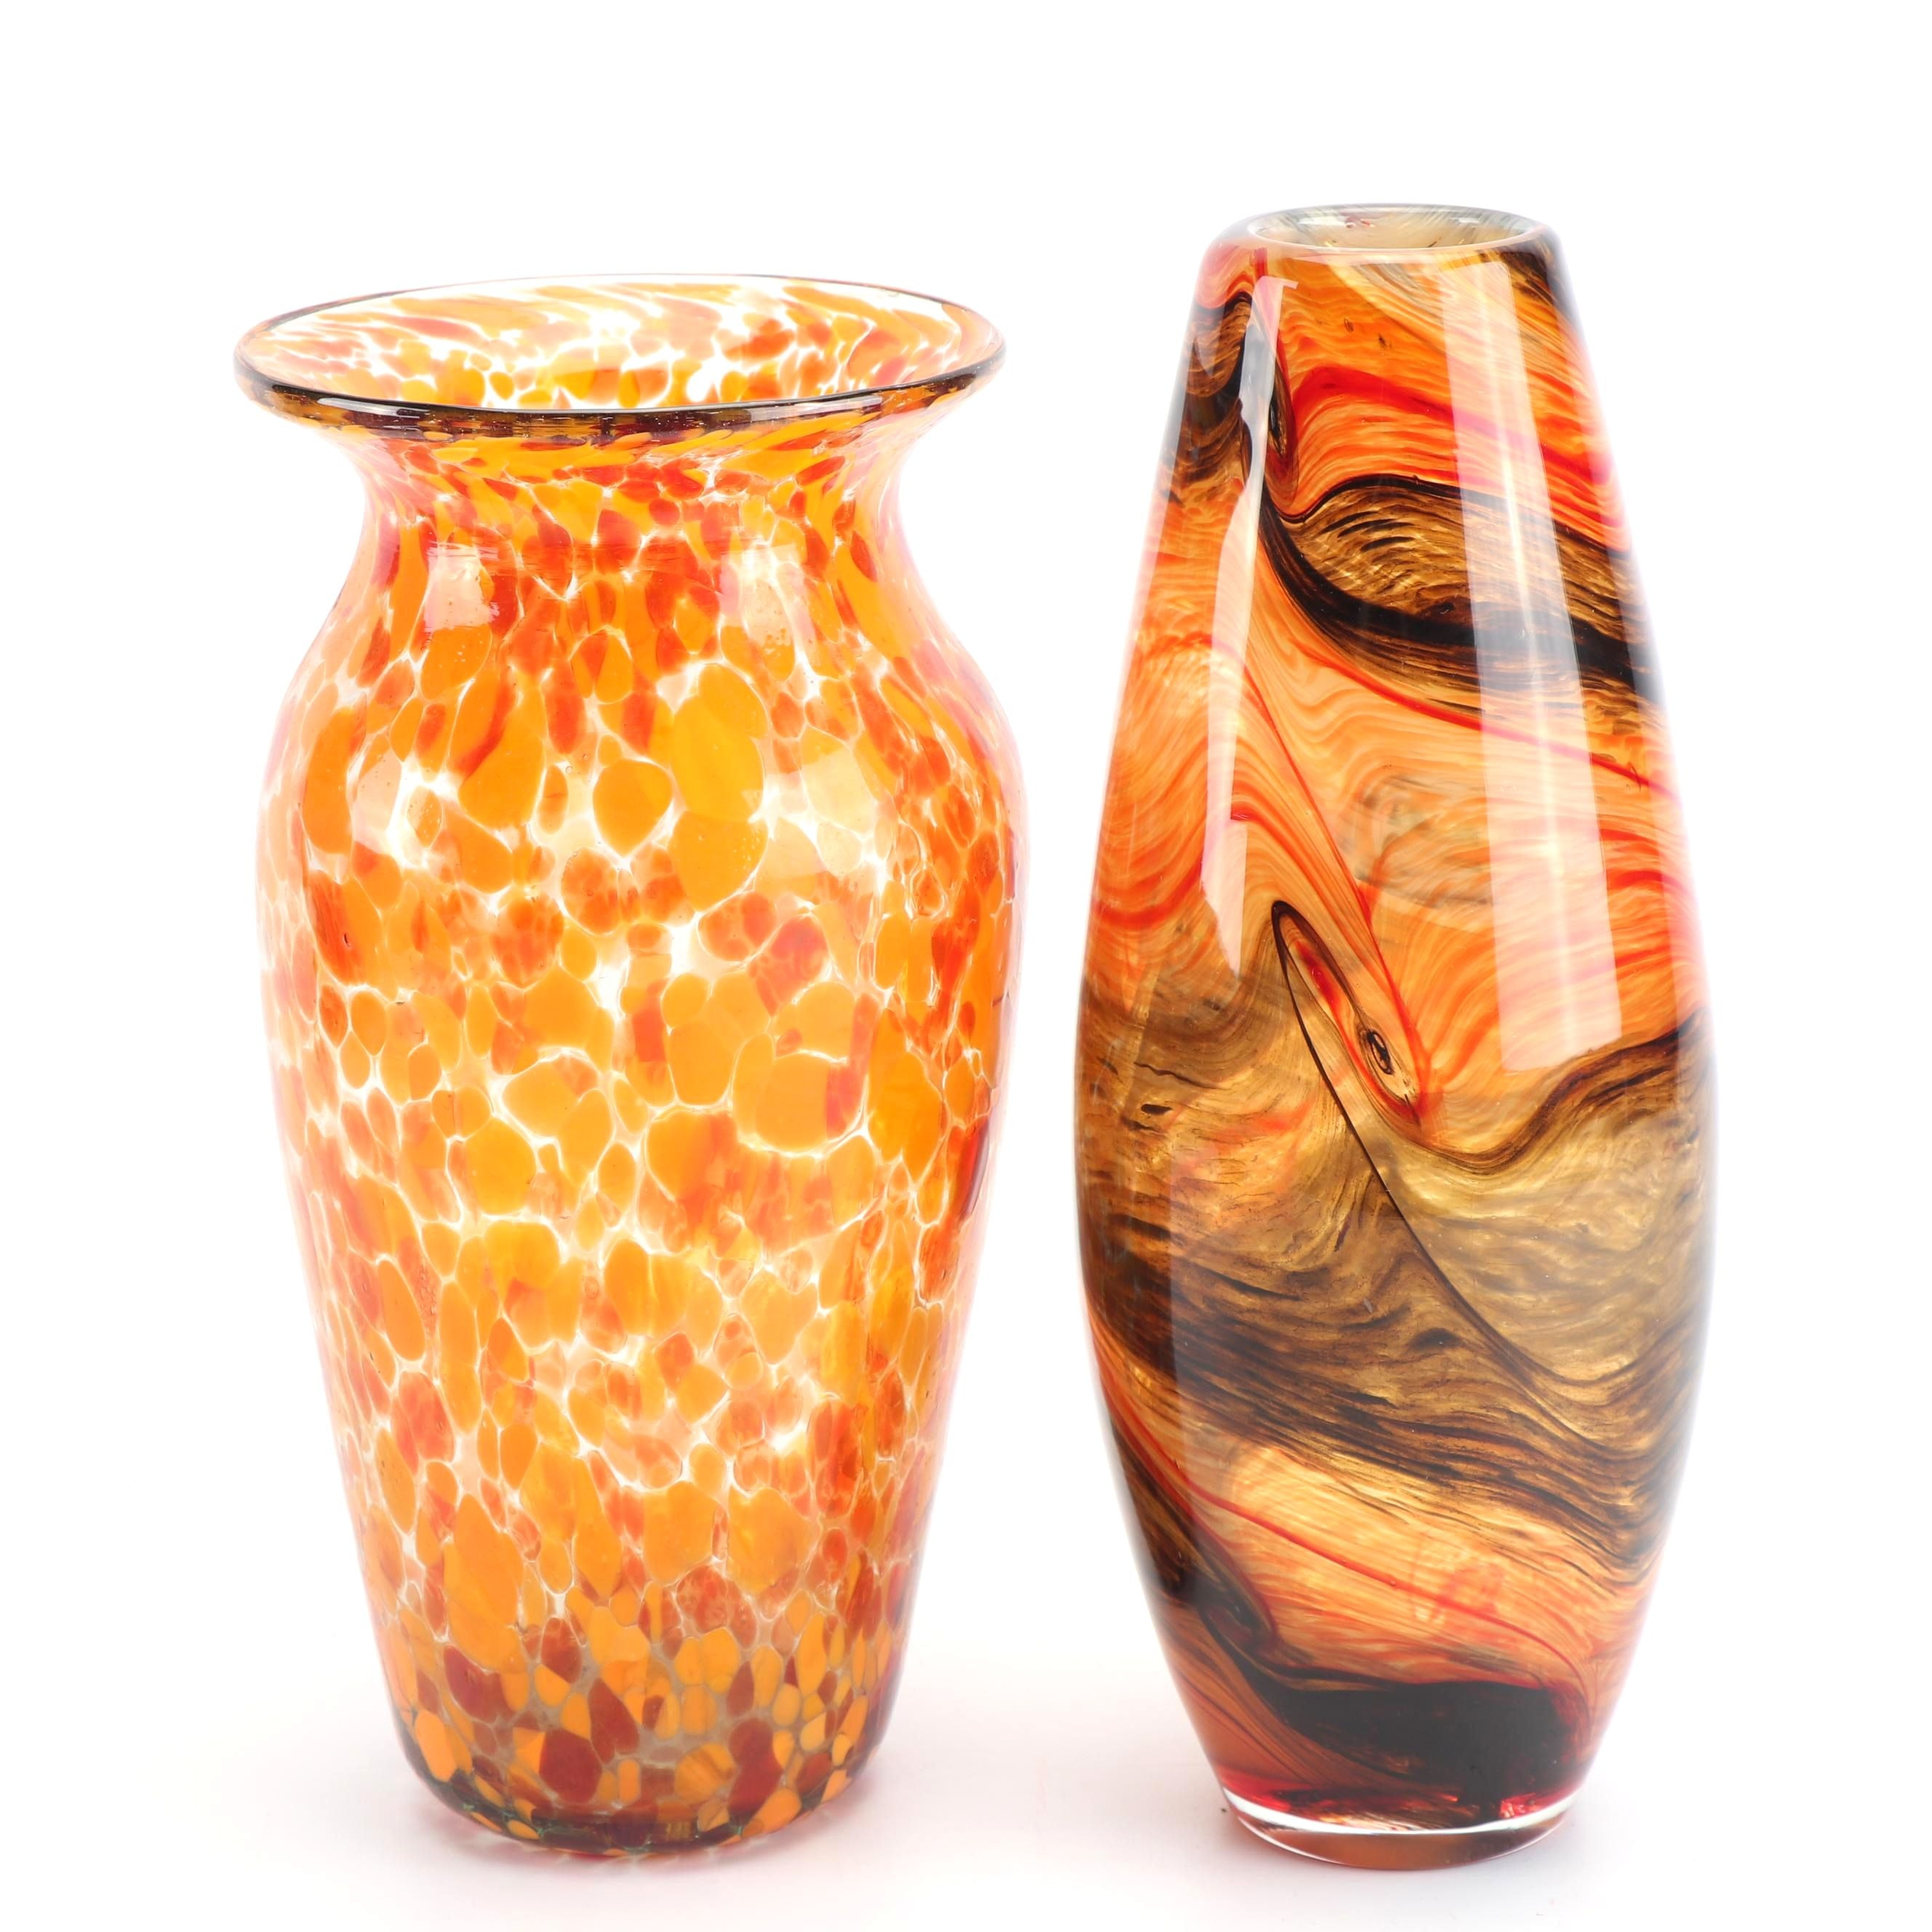 Mexican Pomeroy and Swirling Polychromatic Blown Glass Vases